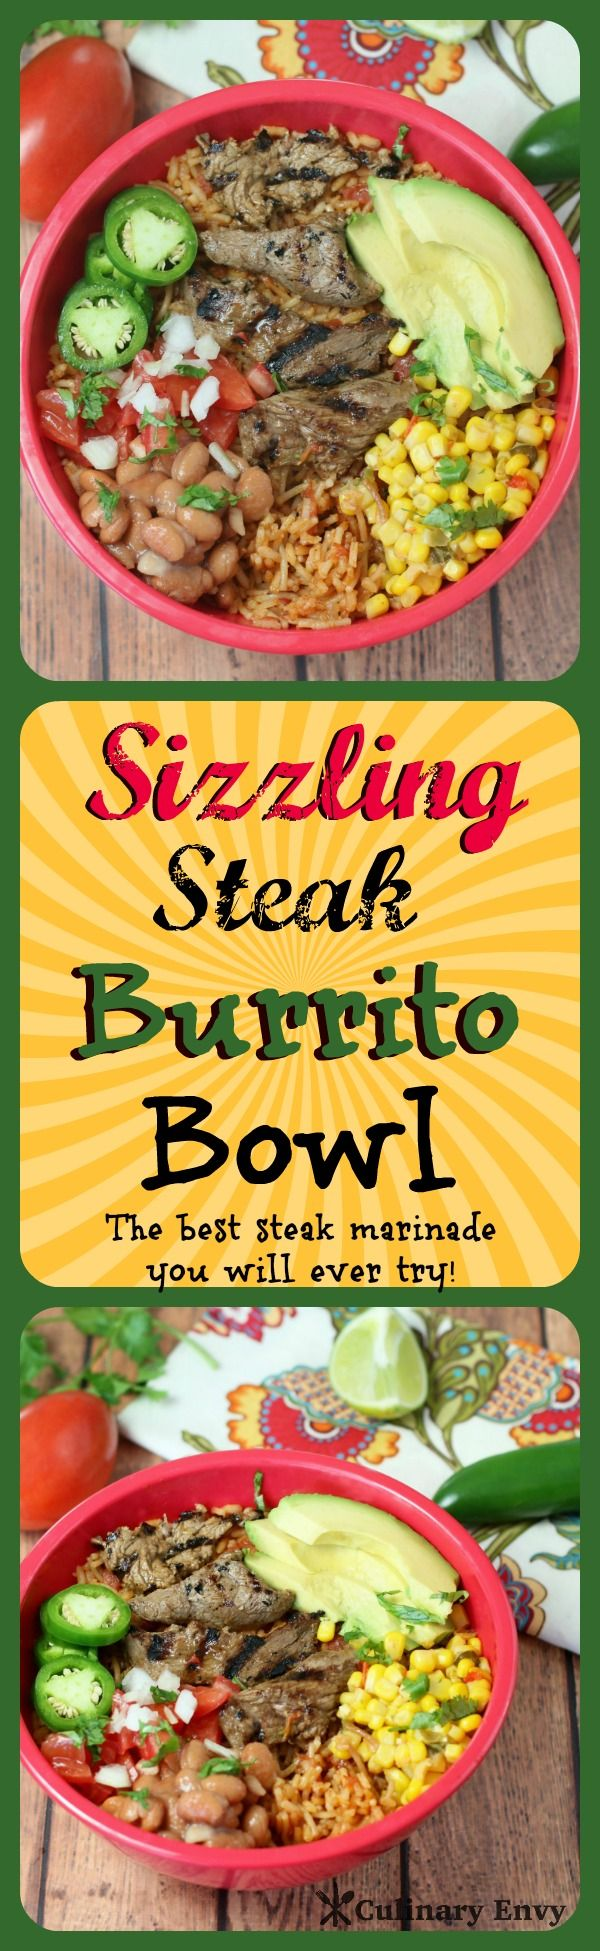 Sizzling Steak Burrito Bowl is not your average burrito bowl! Marinated grilled steak, savory Spanish rice, zesty beans and corn, smoky ranch, plus all the other fantastic fixings.  Perfect for game day!